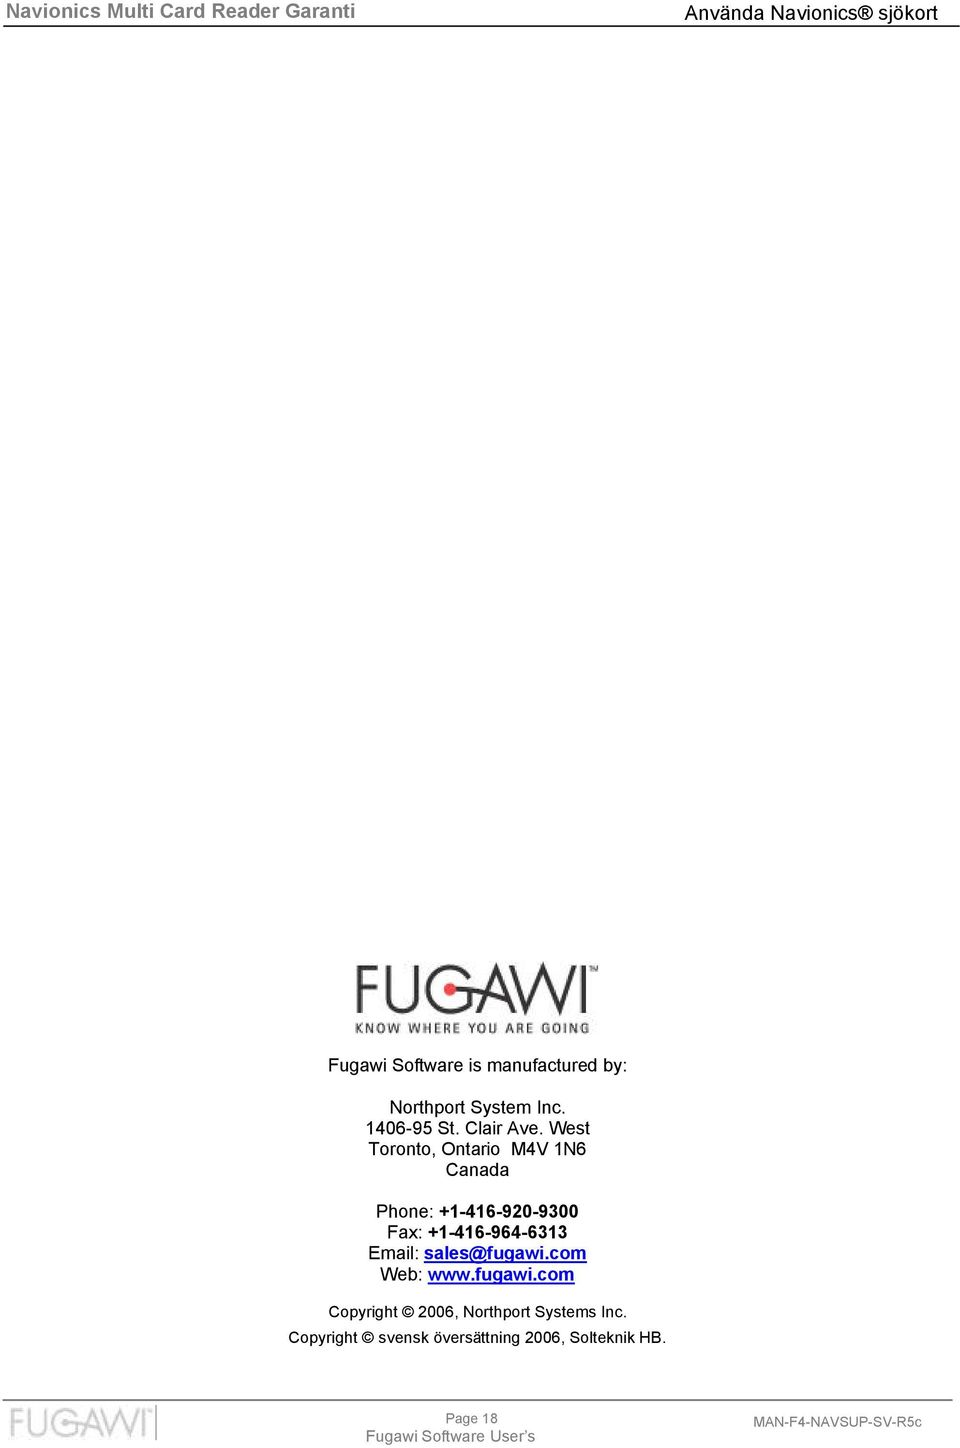 West Toronto, Ontario M4V 1N6 Canada Phone: +1-416-920-9300 Fax: +1-416-964-6313 Email: sales@fugawi.